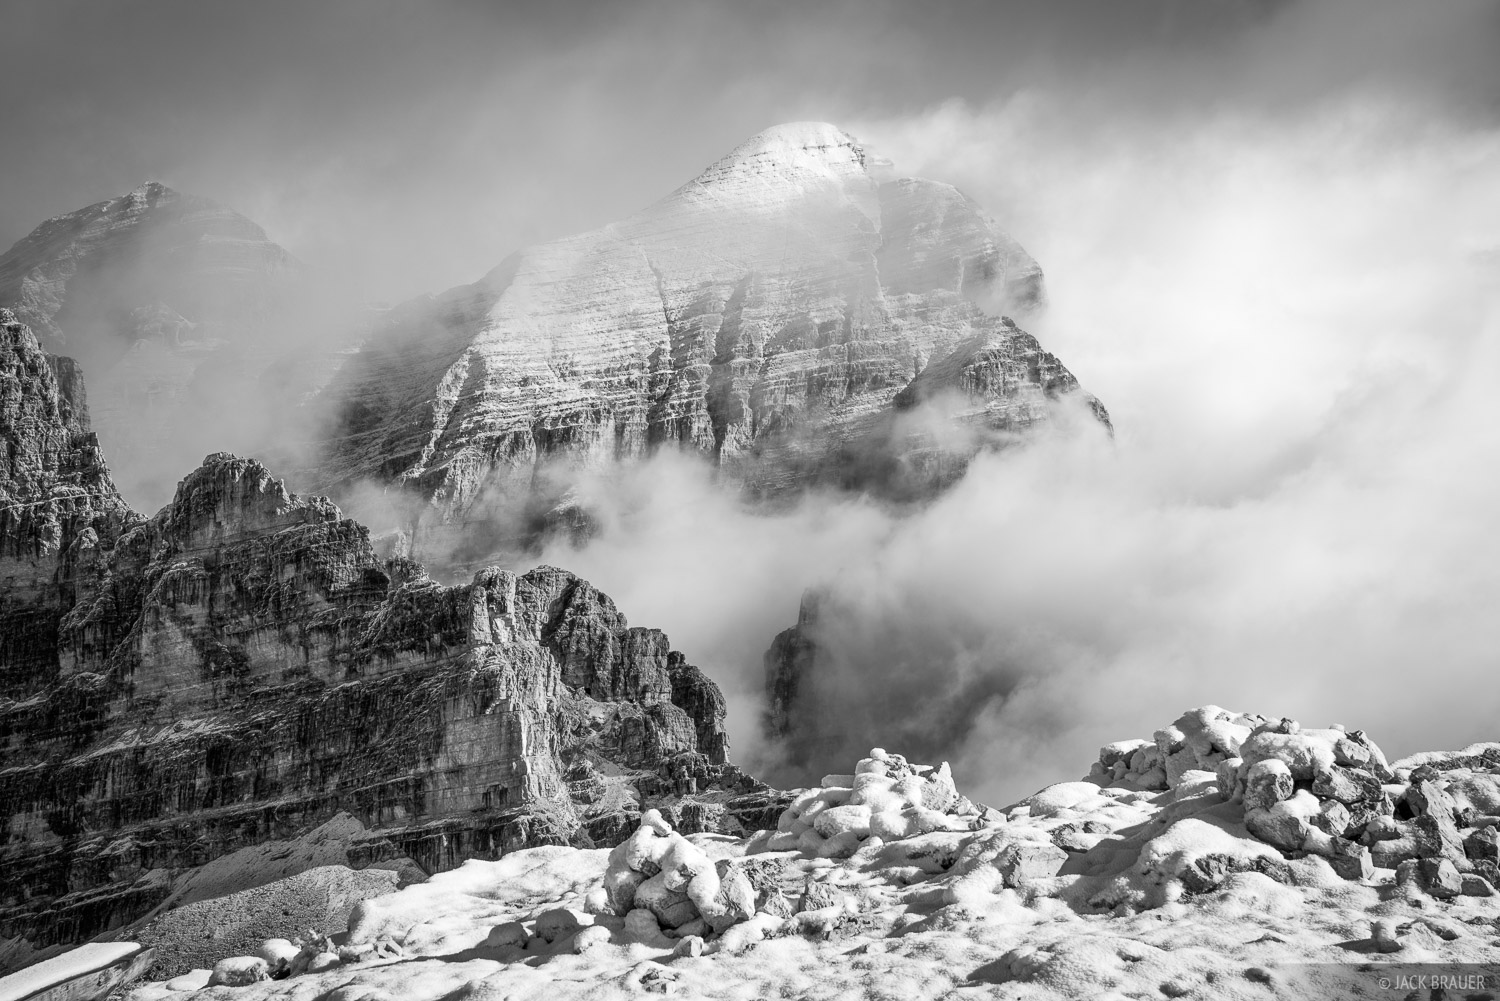 Dolomites, Italy, Lagazuoi, Tofana de Rozes, bw, October, Alps, photo